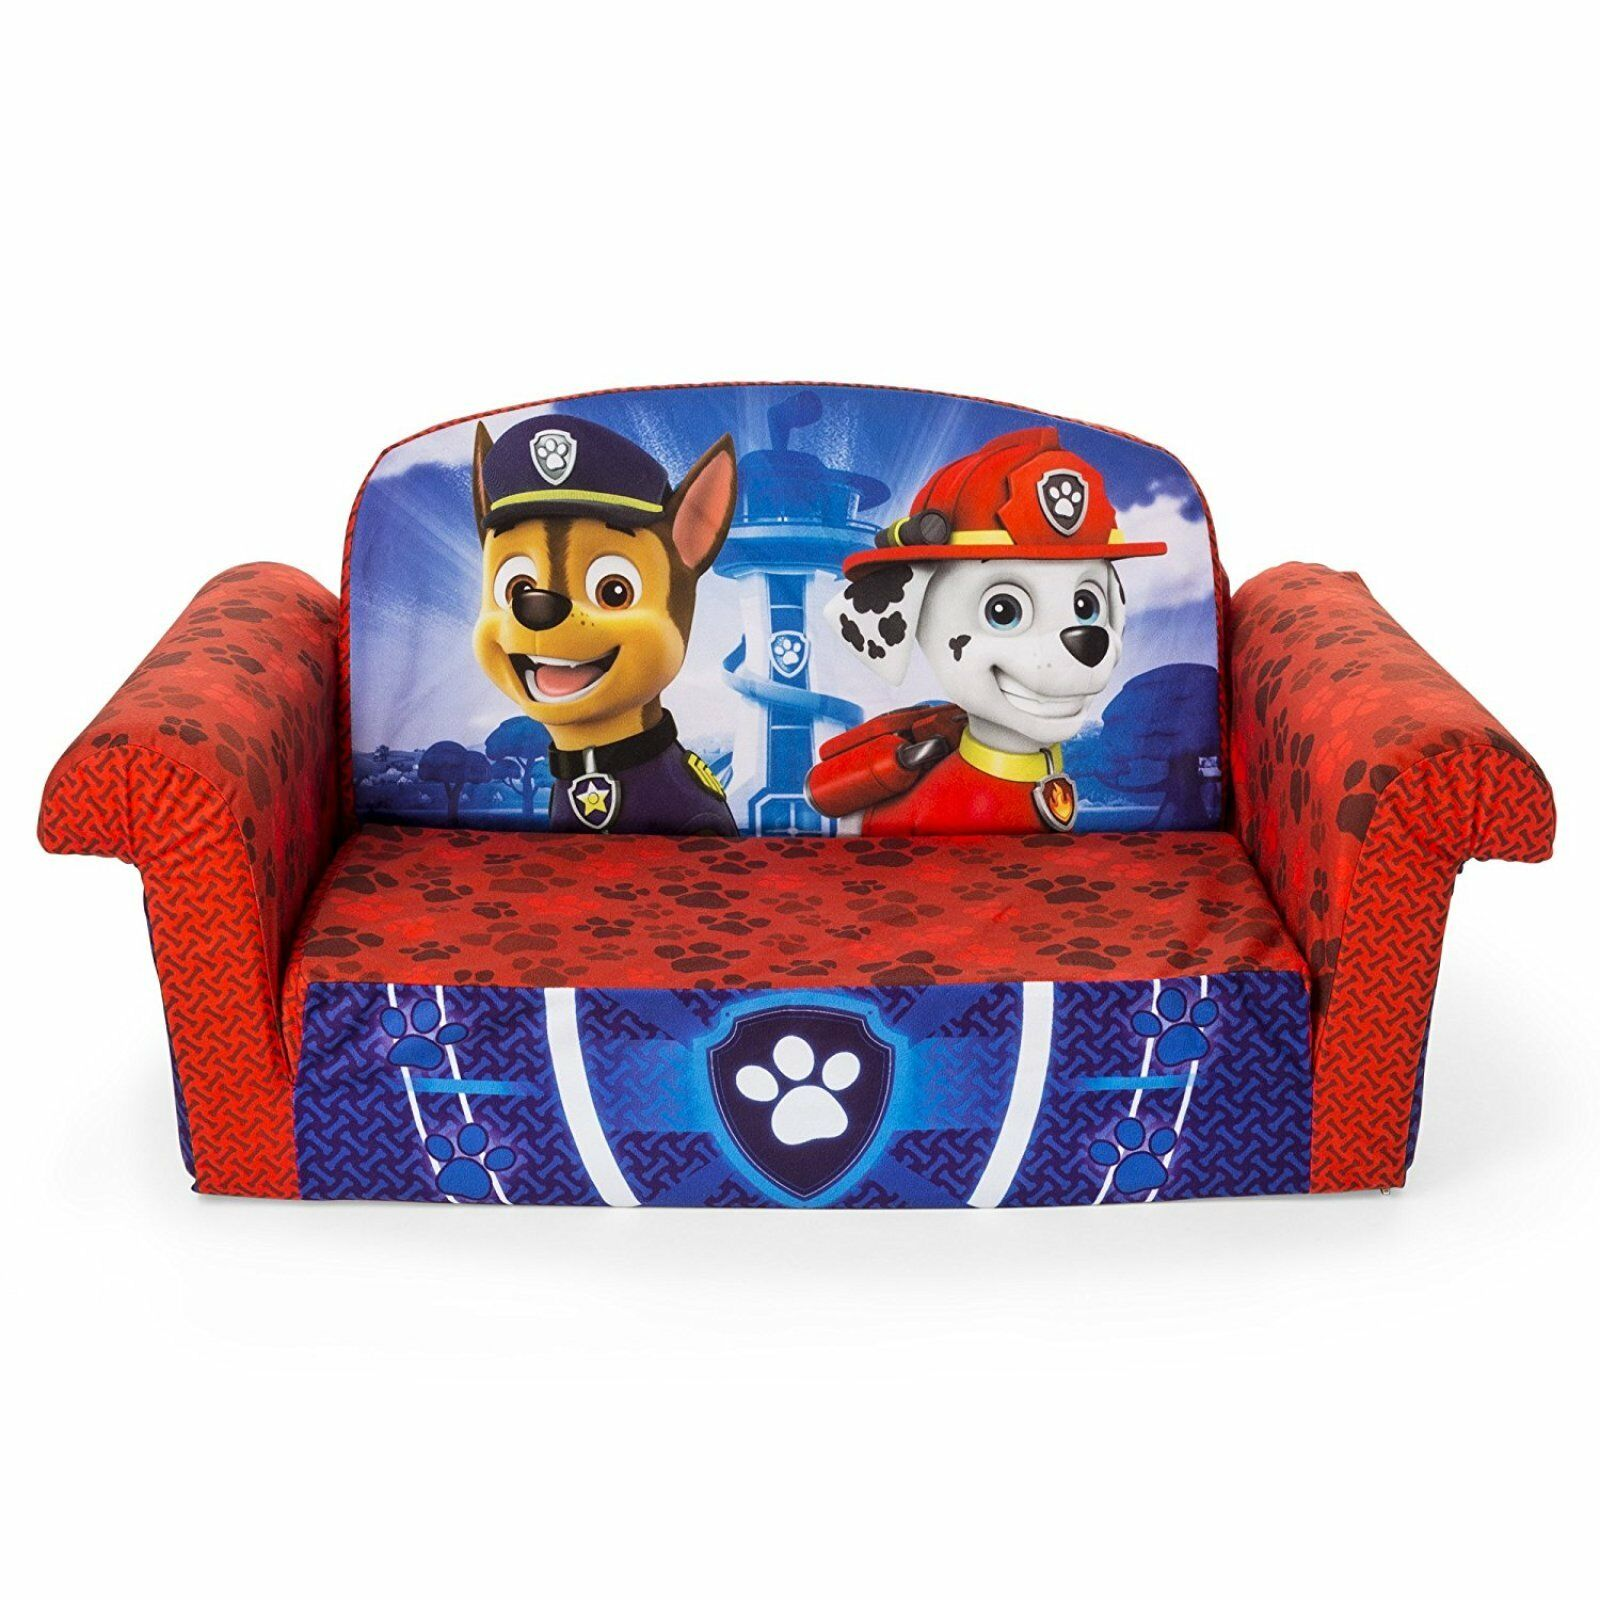 Paw Patrol Kids Sofa Bed Chair Couch Toddler Recliner